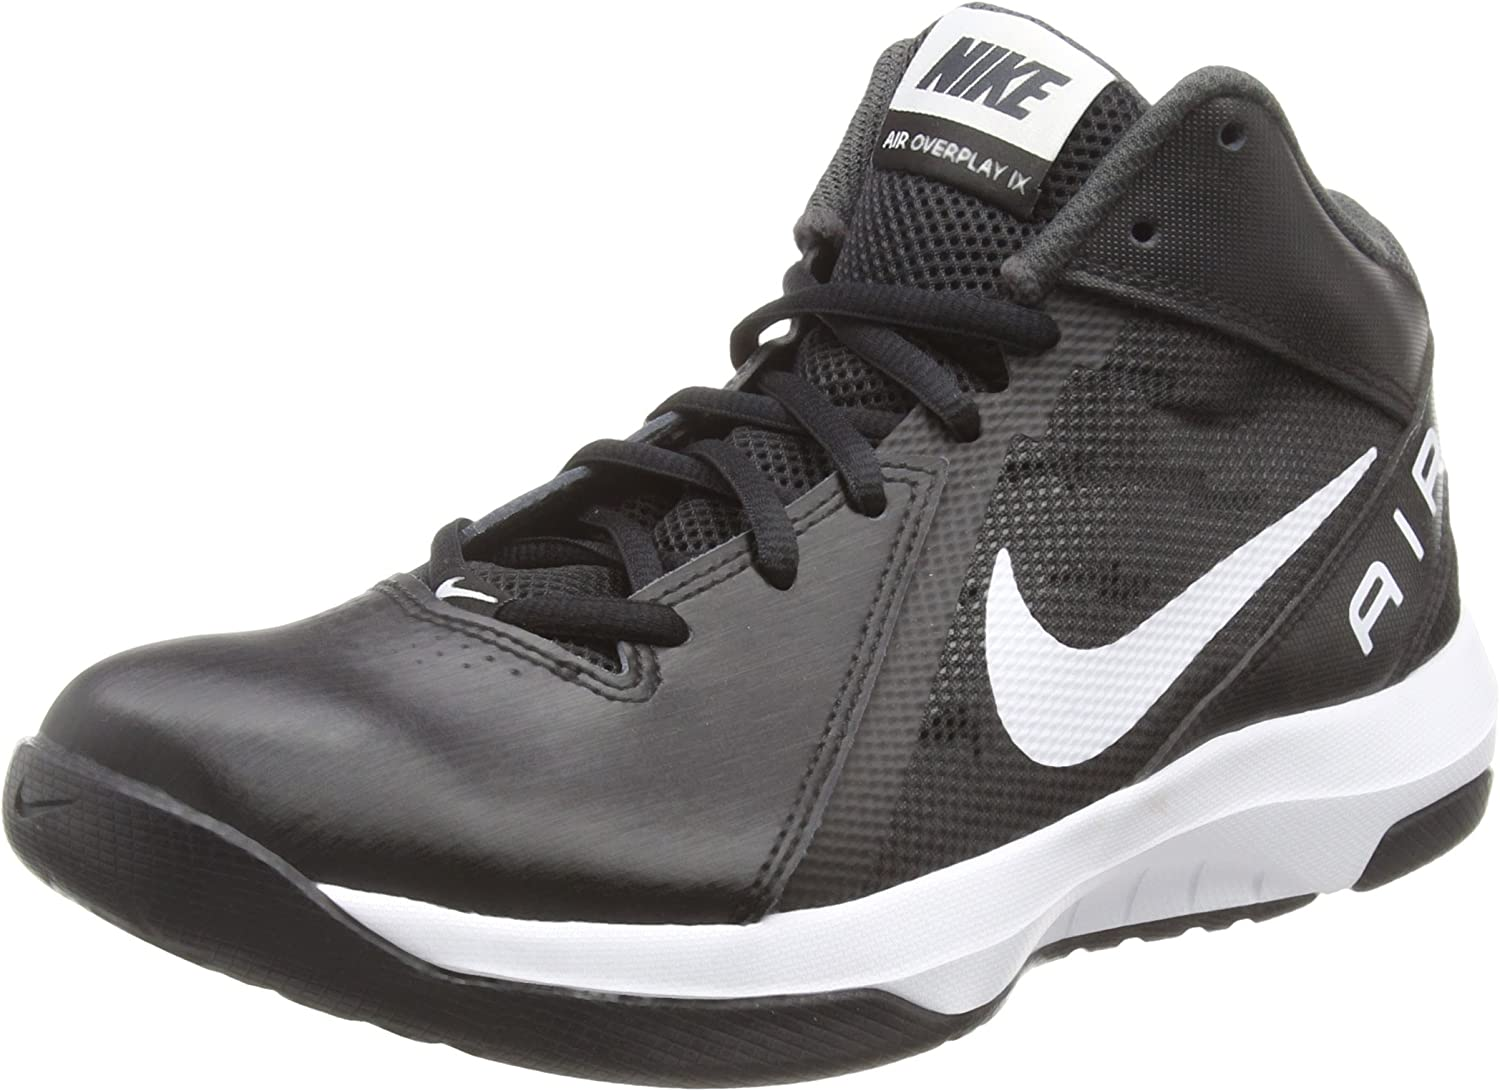 Nike The Air Overplay IX, Chaussures de Sport Basketball Homme